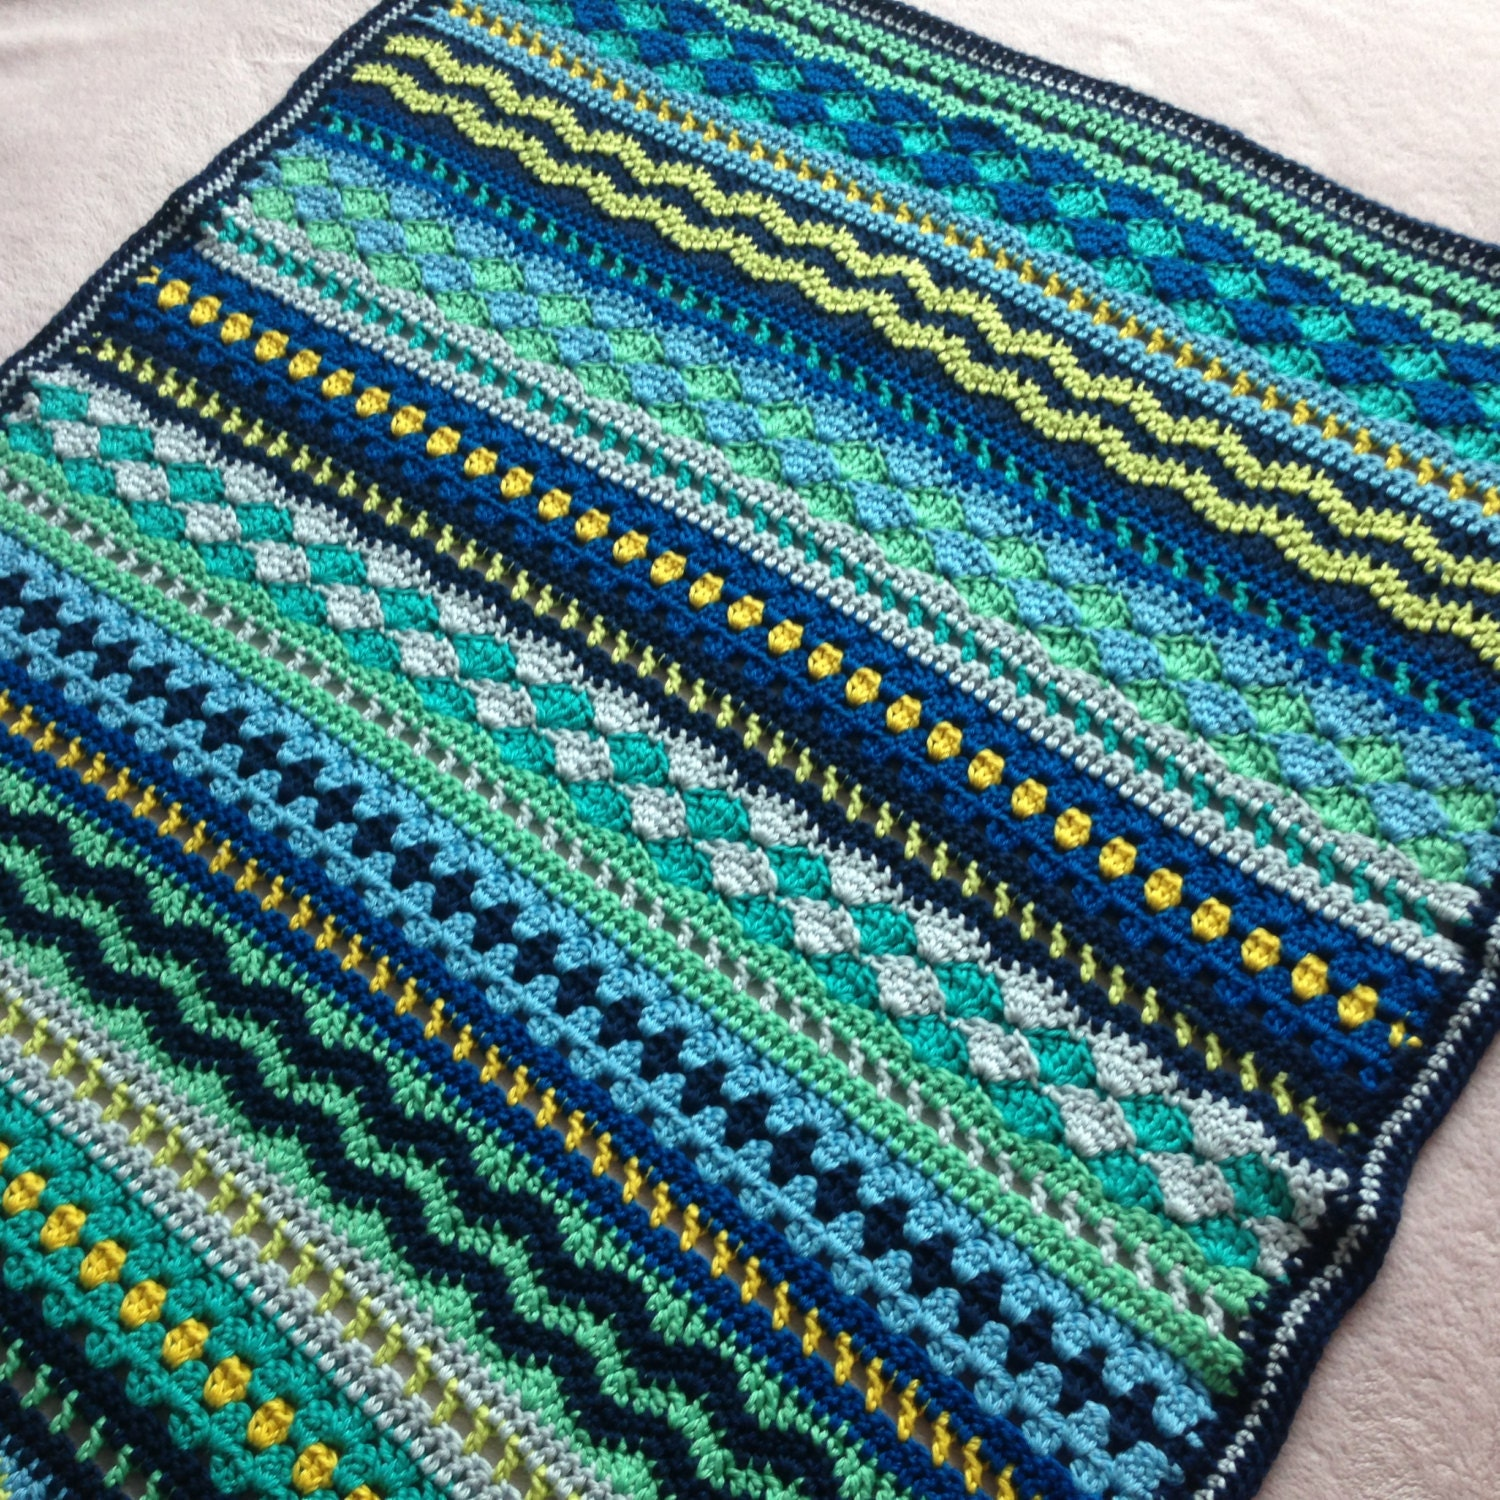 Crochet baby blanket pattern tutorial baby blues blanket crochet baby blanket pattern tutorial baby blues blanket crochet pattern mixed stitch blanket baby boy baby girl instant download bankloansurffo Choice Image